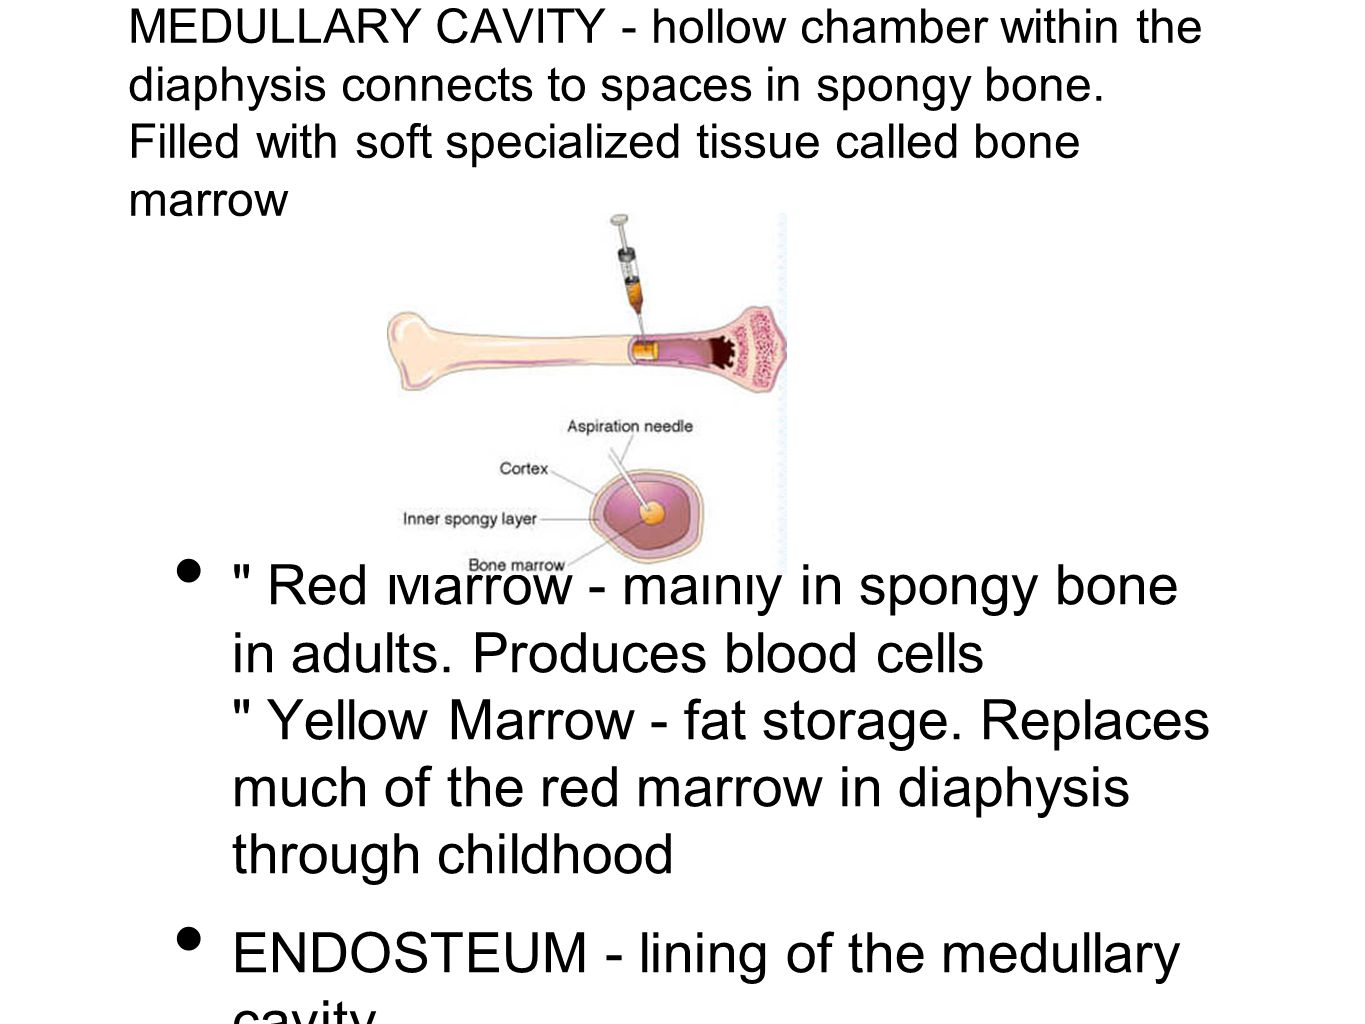 MEDULLARY CAVITY - hollow chamber within the diaphysis connects to spaces in spongy bone. Filled with soft specialized tissue called bone marrow